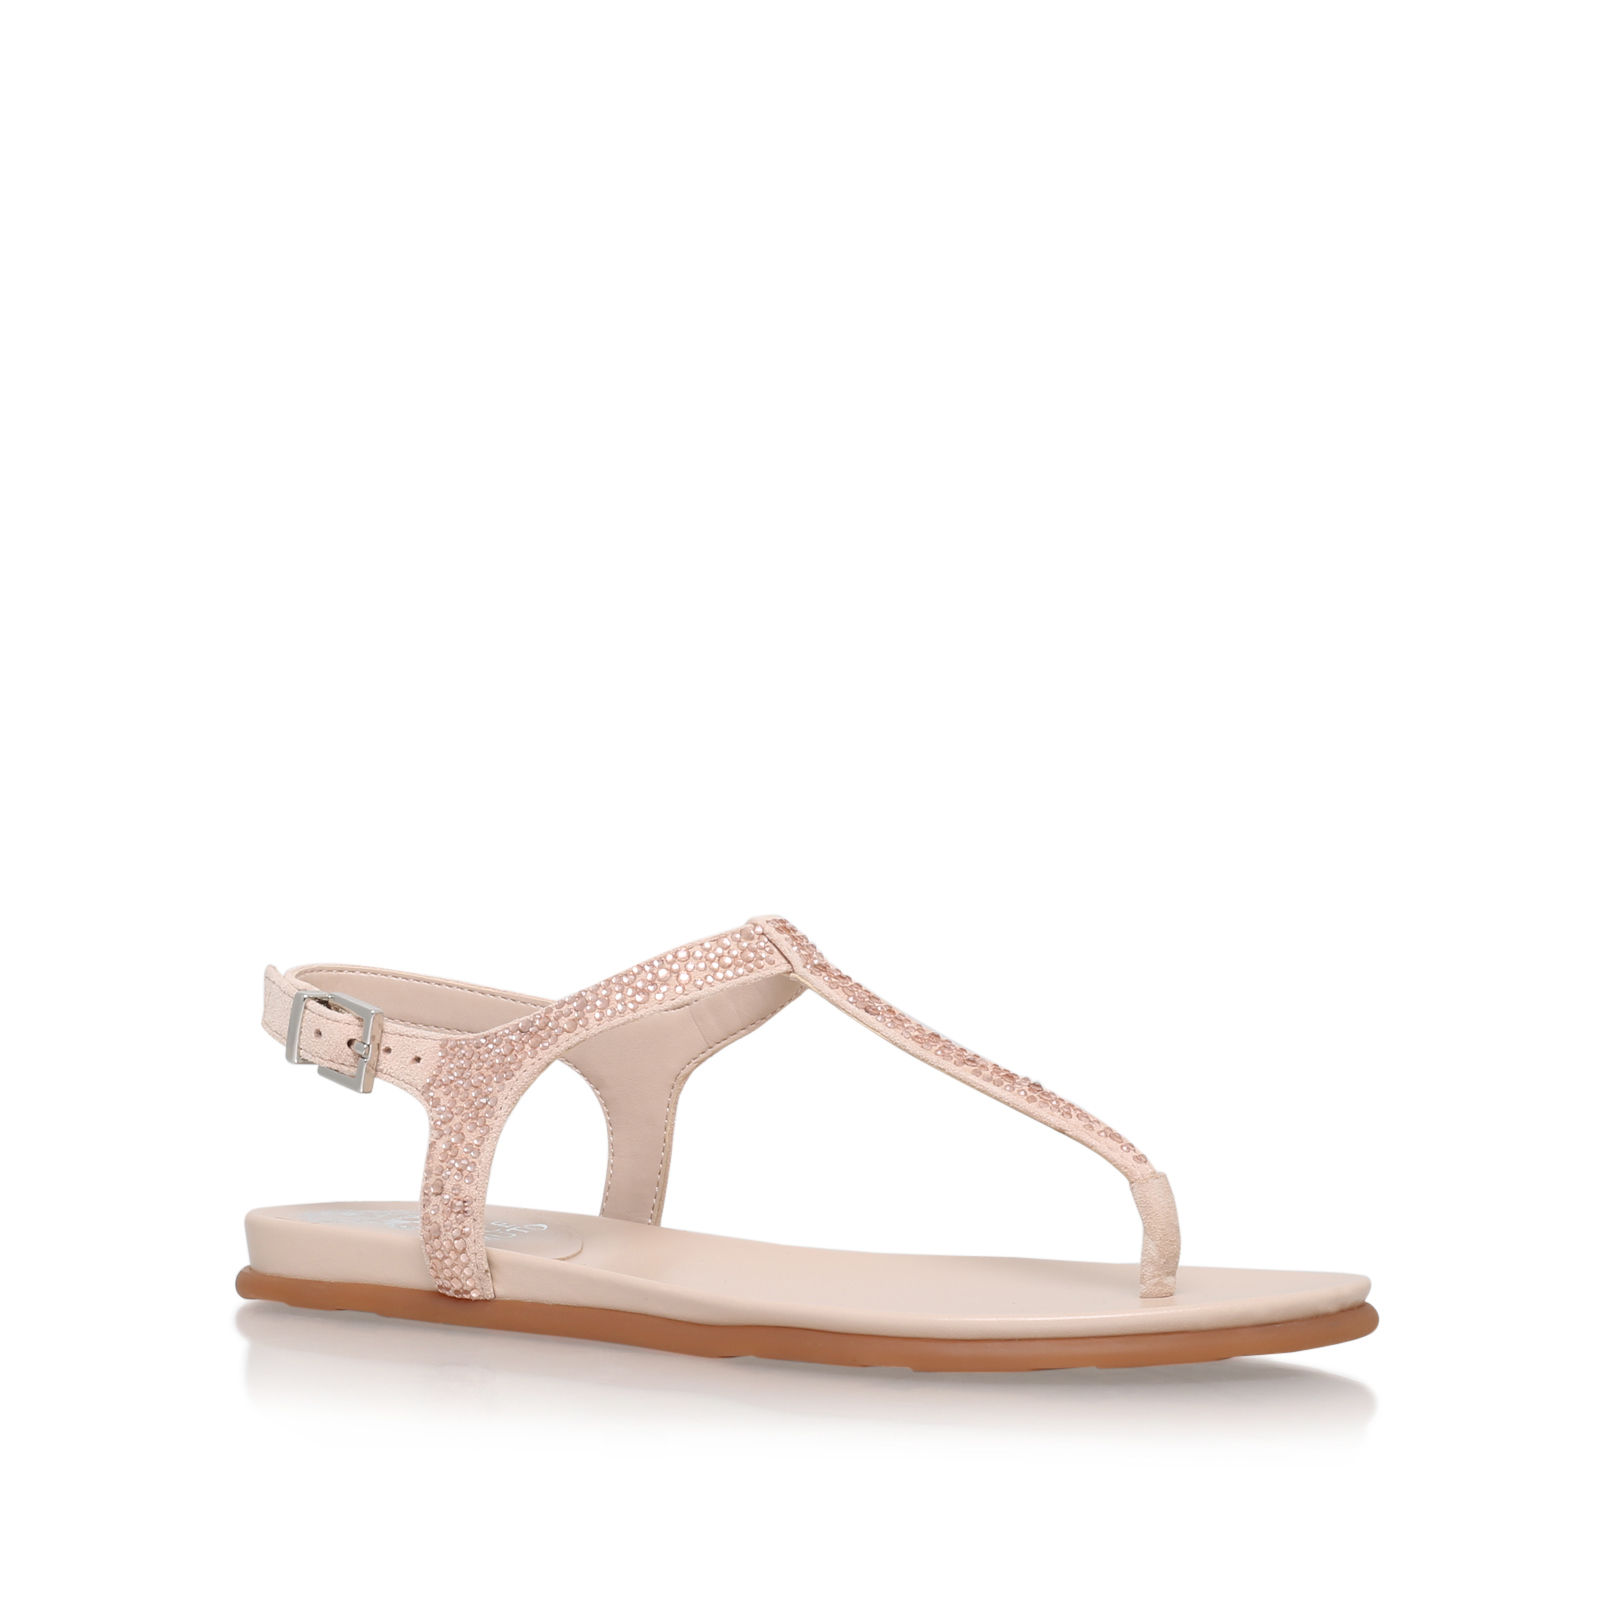 00f1c324926b EMMIL Vince Camuto Emmil Nude Suede Flat Sandals by VINCE CAMUTO